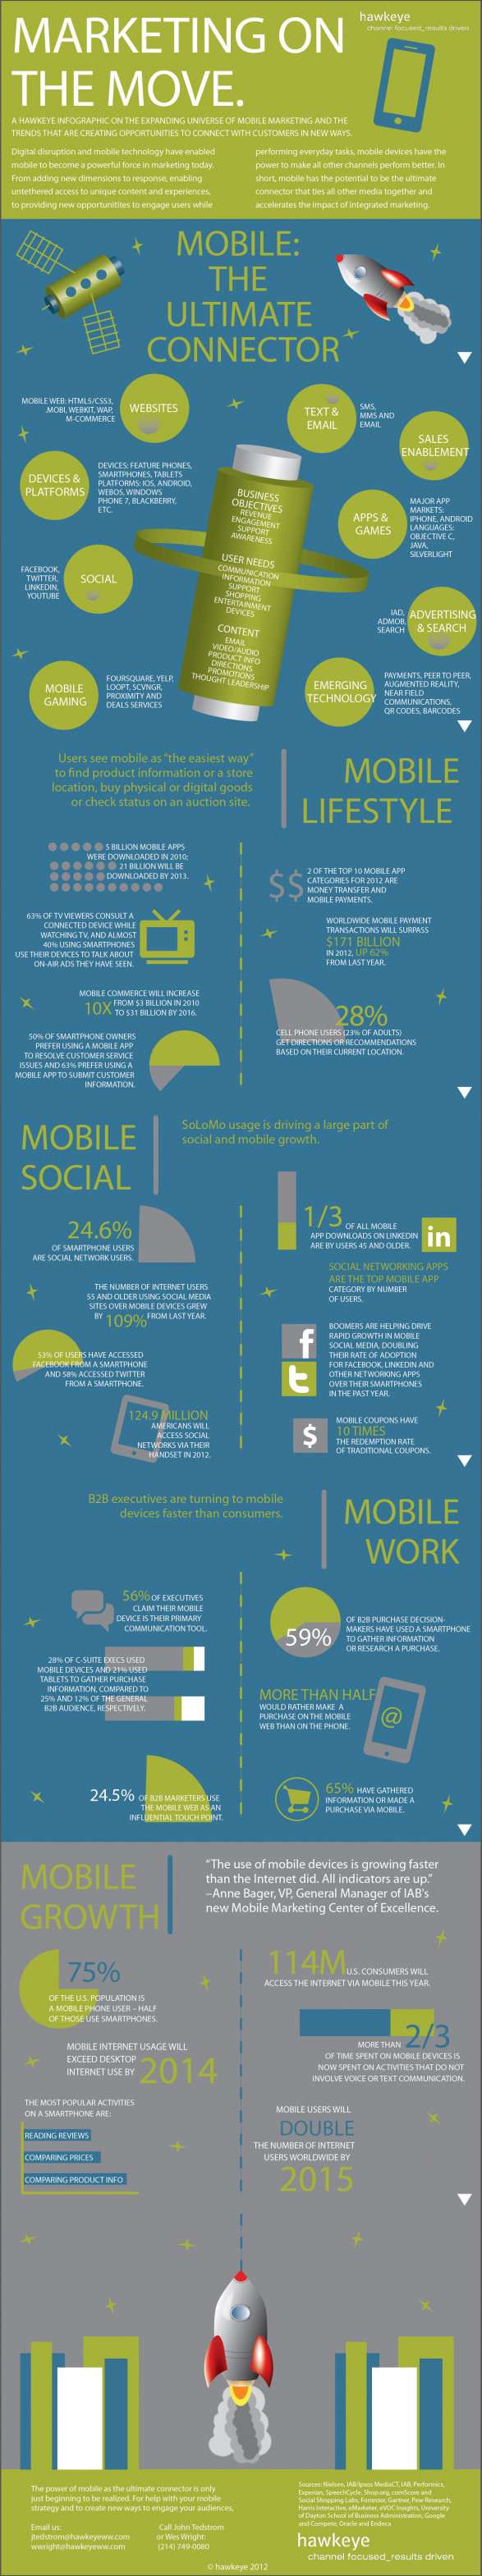 Mobile Marketing On the Move